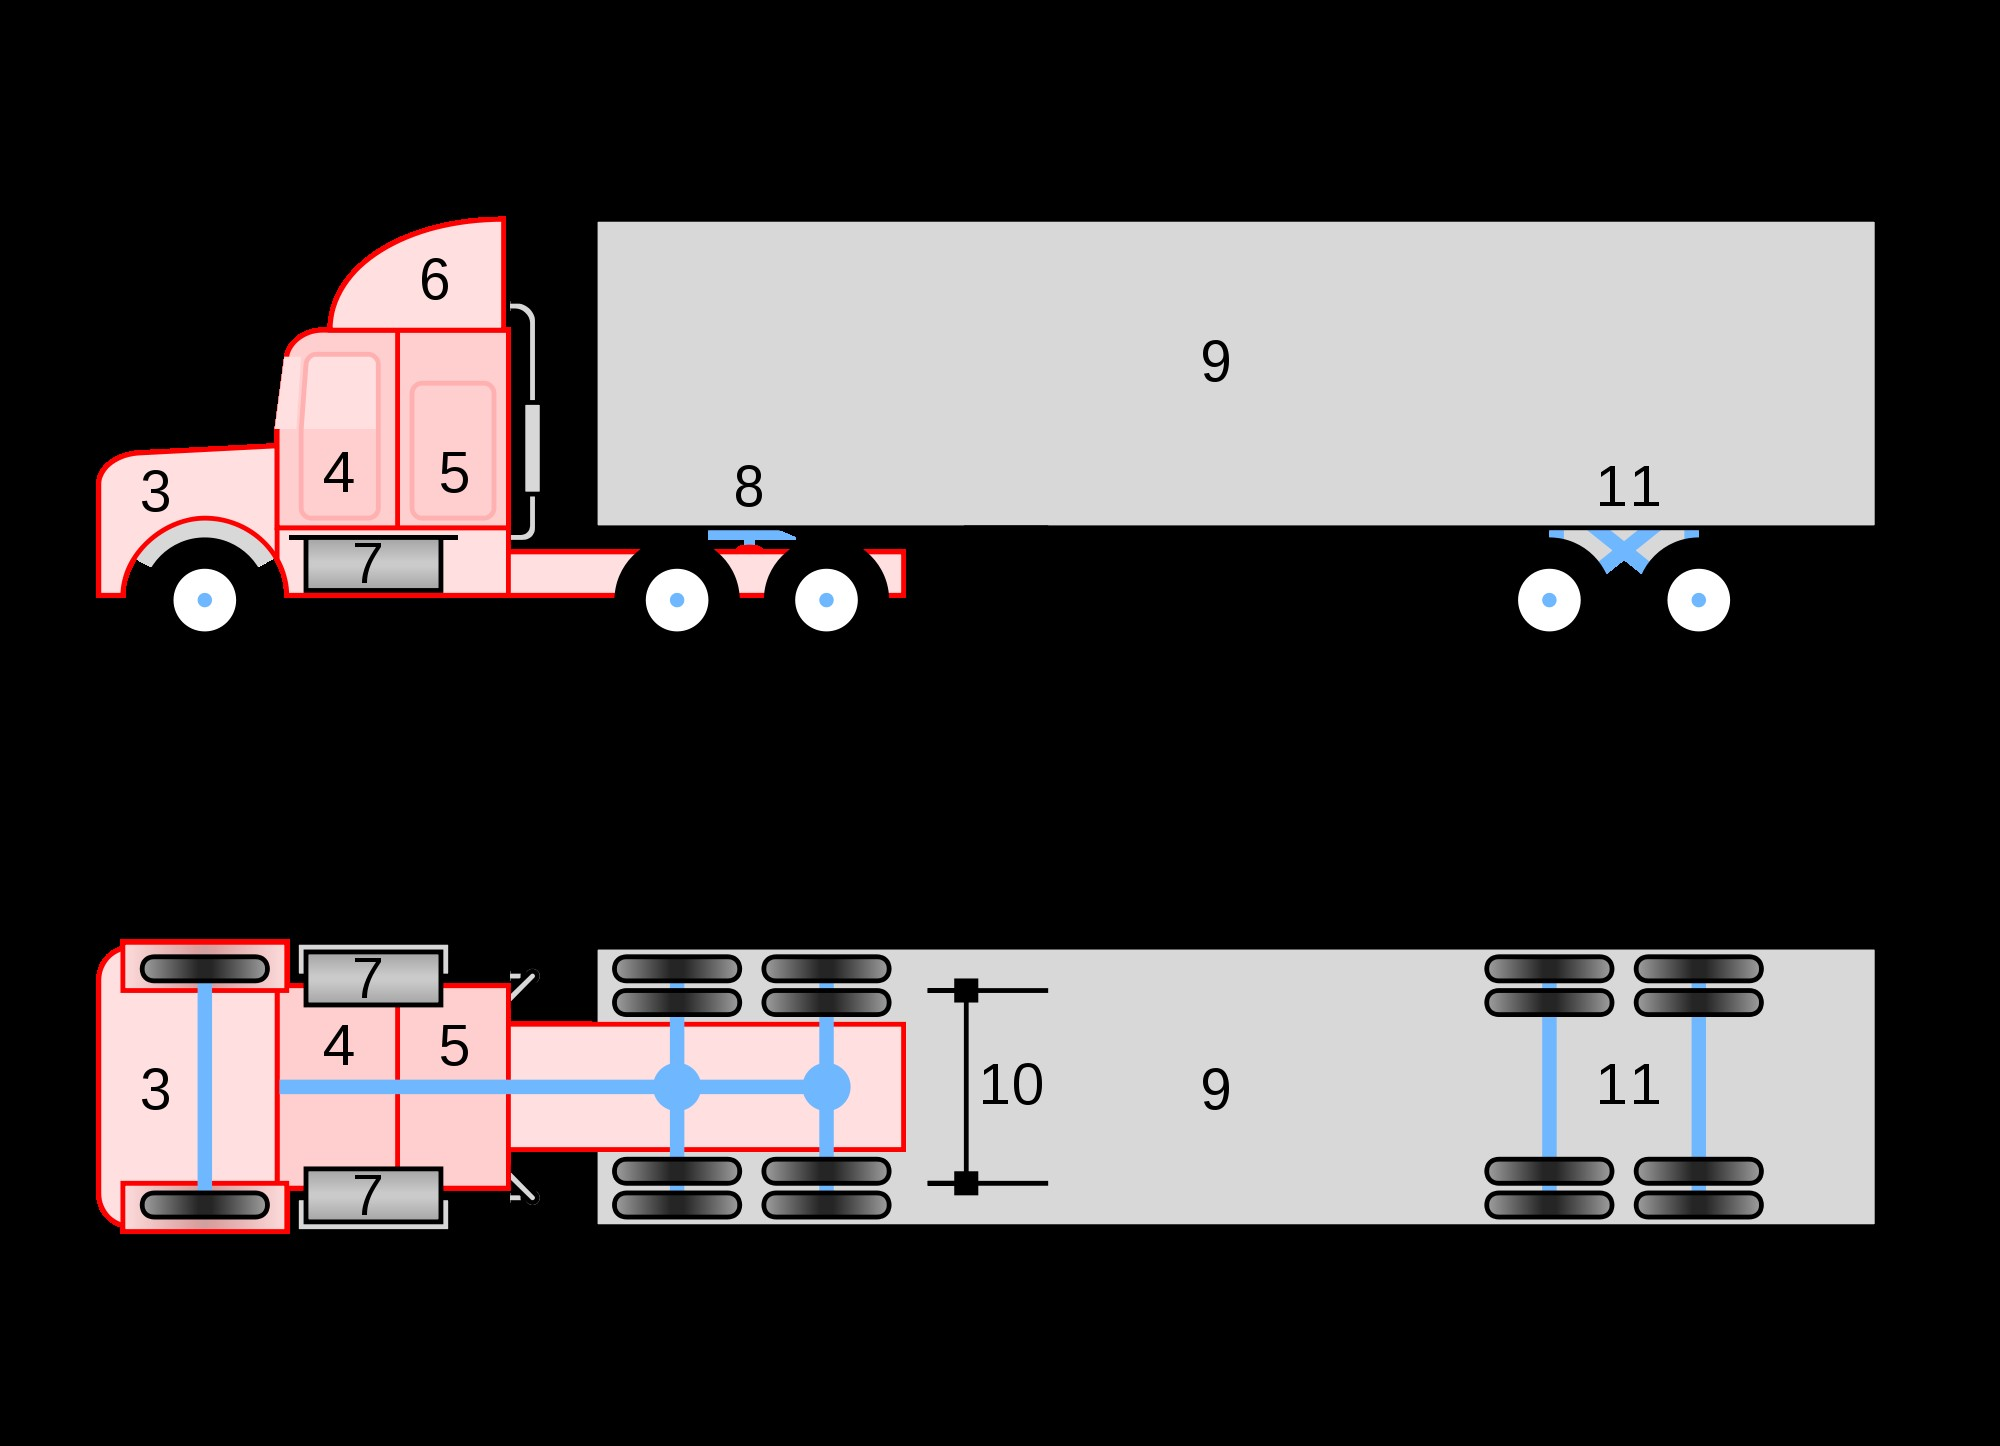 Car Underside Diagram File Conventional 18 Wheeler Truck Diagramg Wikimedia Mons Of Car Underside Diagram